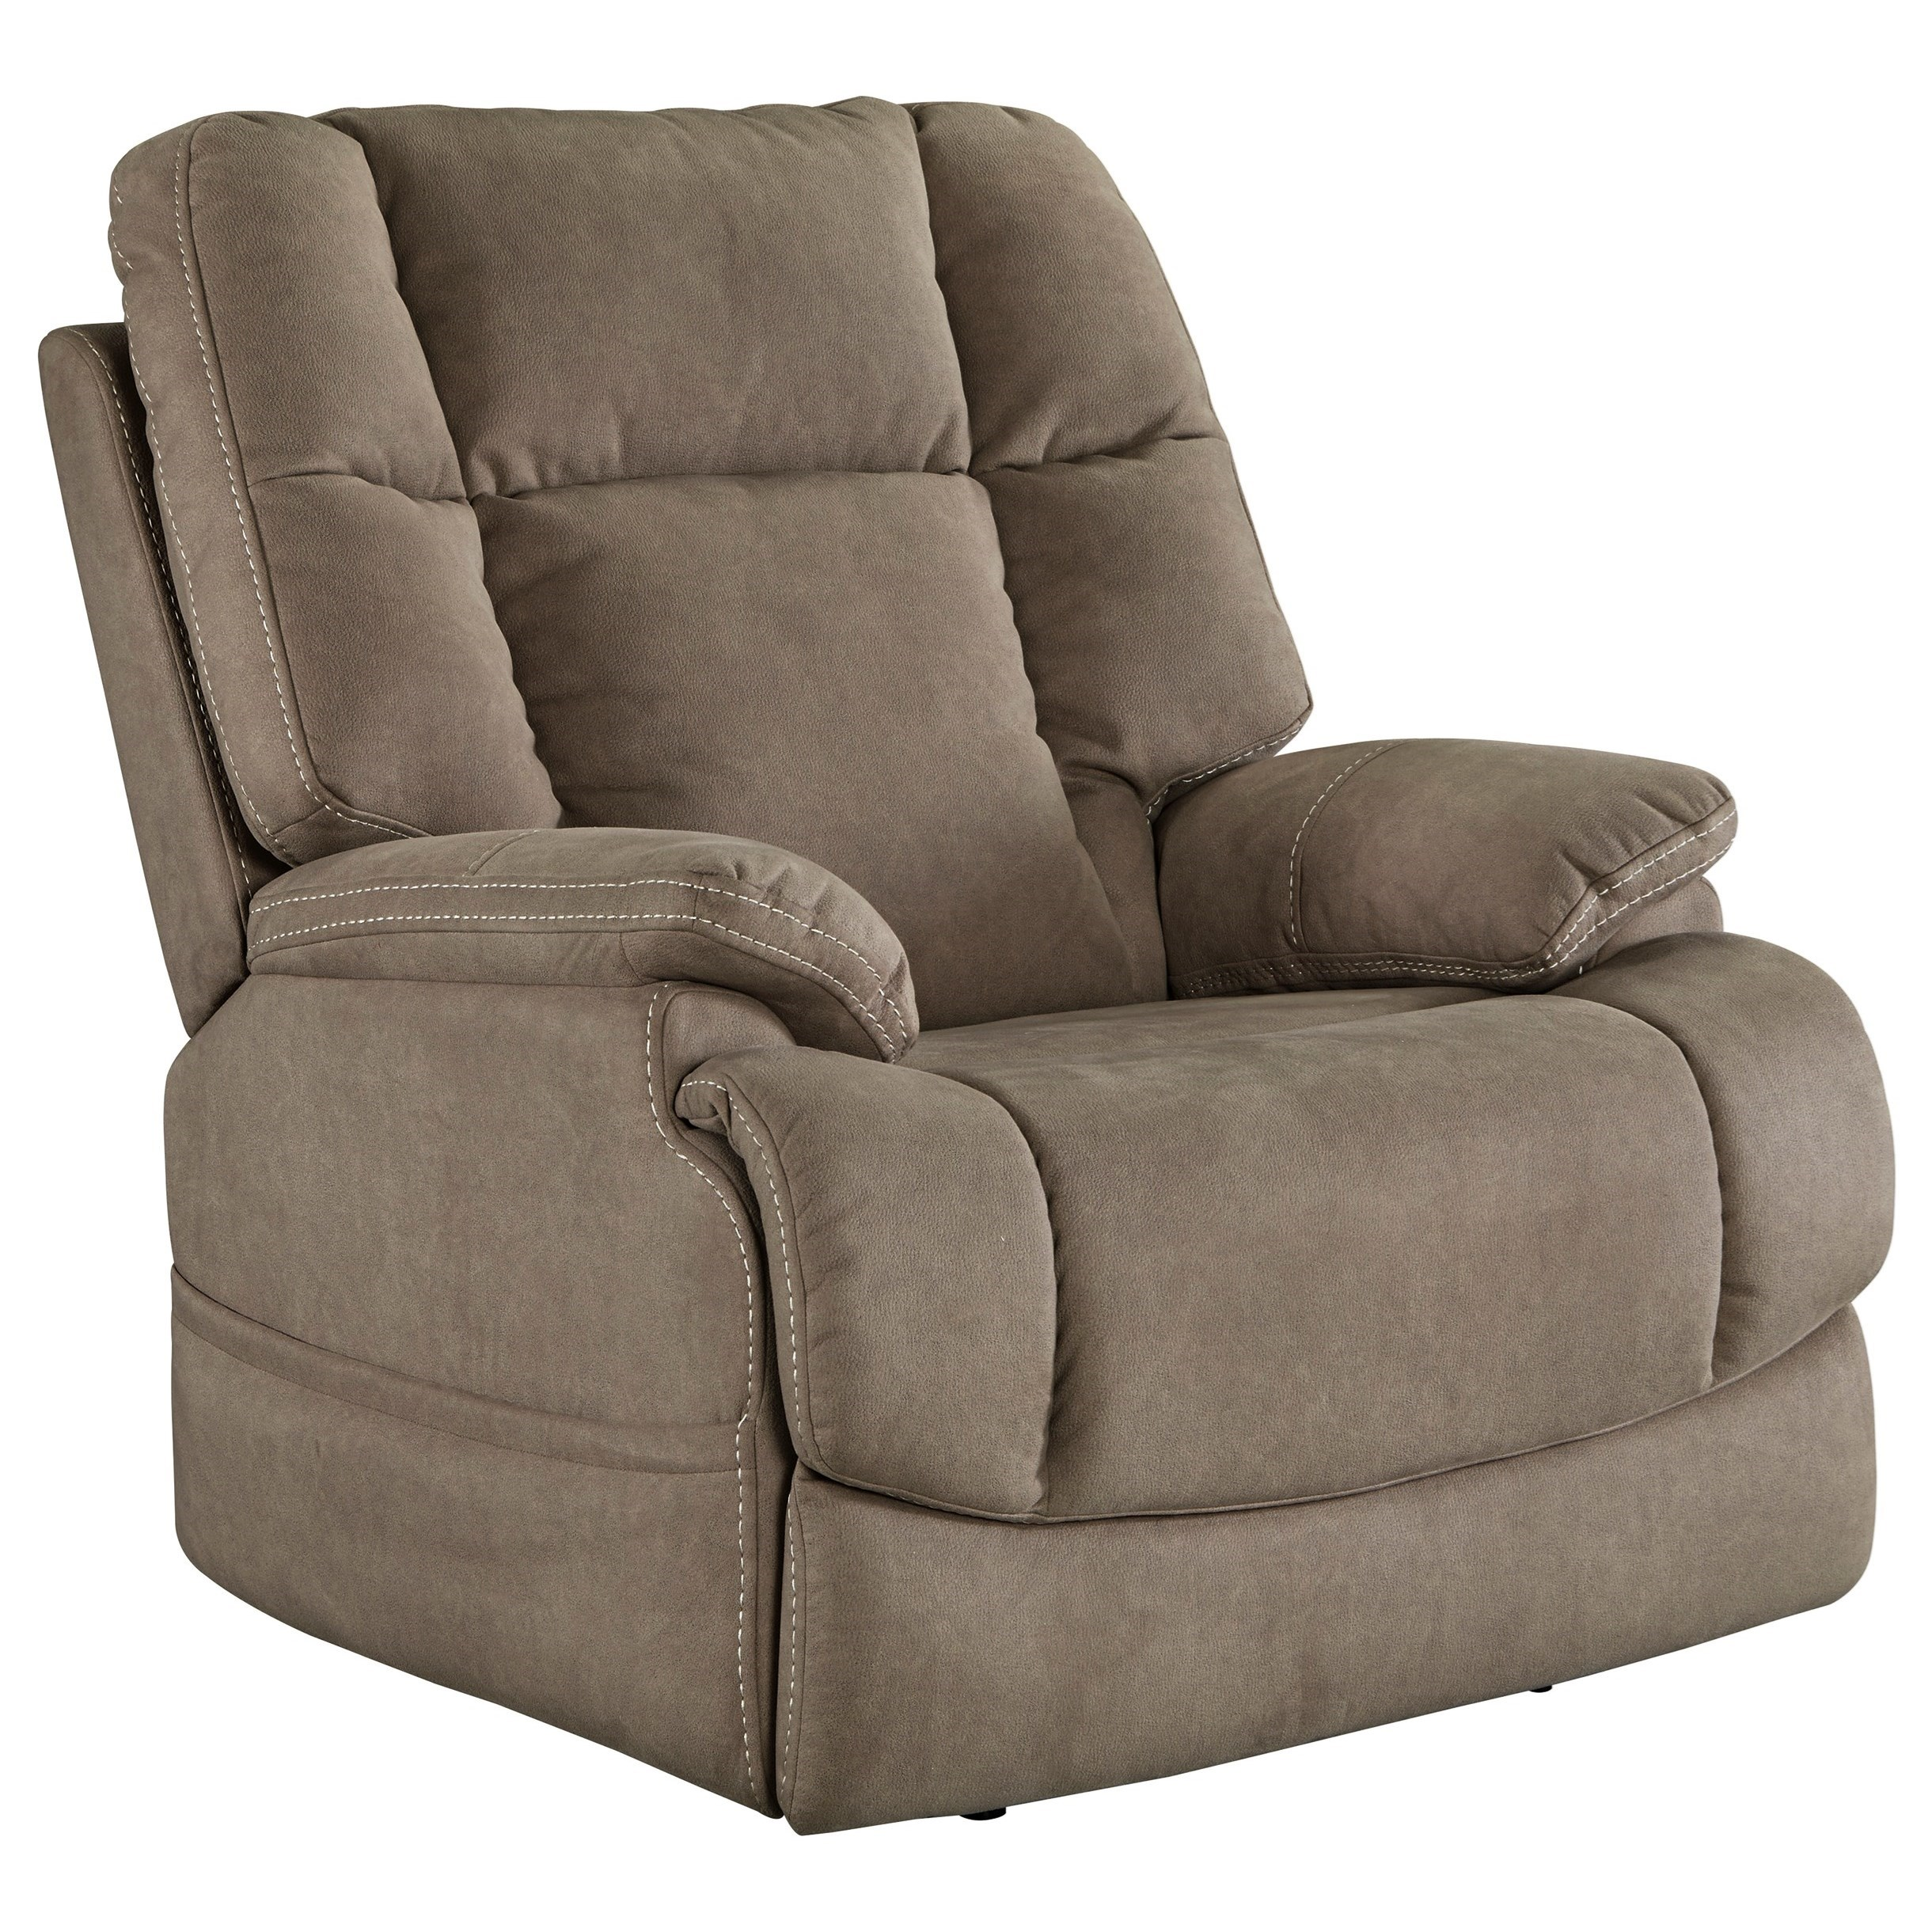 Signature Design by Ashley Fourche Power Recliner with Adjustable Headrest - Item Number 6930213  sc 1 st  Northeast Factory Direct & Signature Design by Ashley Fourche 6930213 Power Recliner with ... islam-shia.org